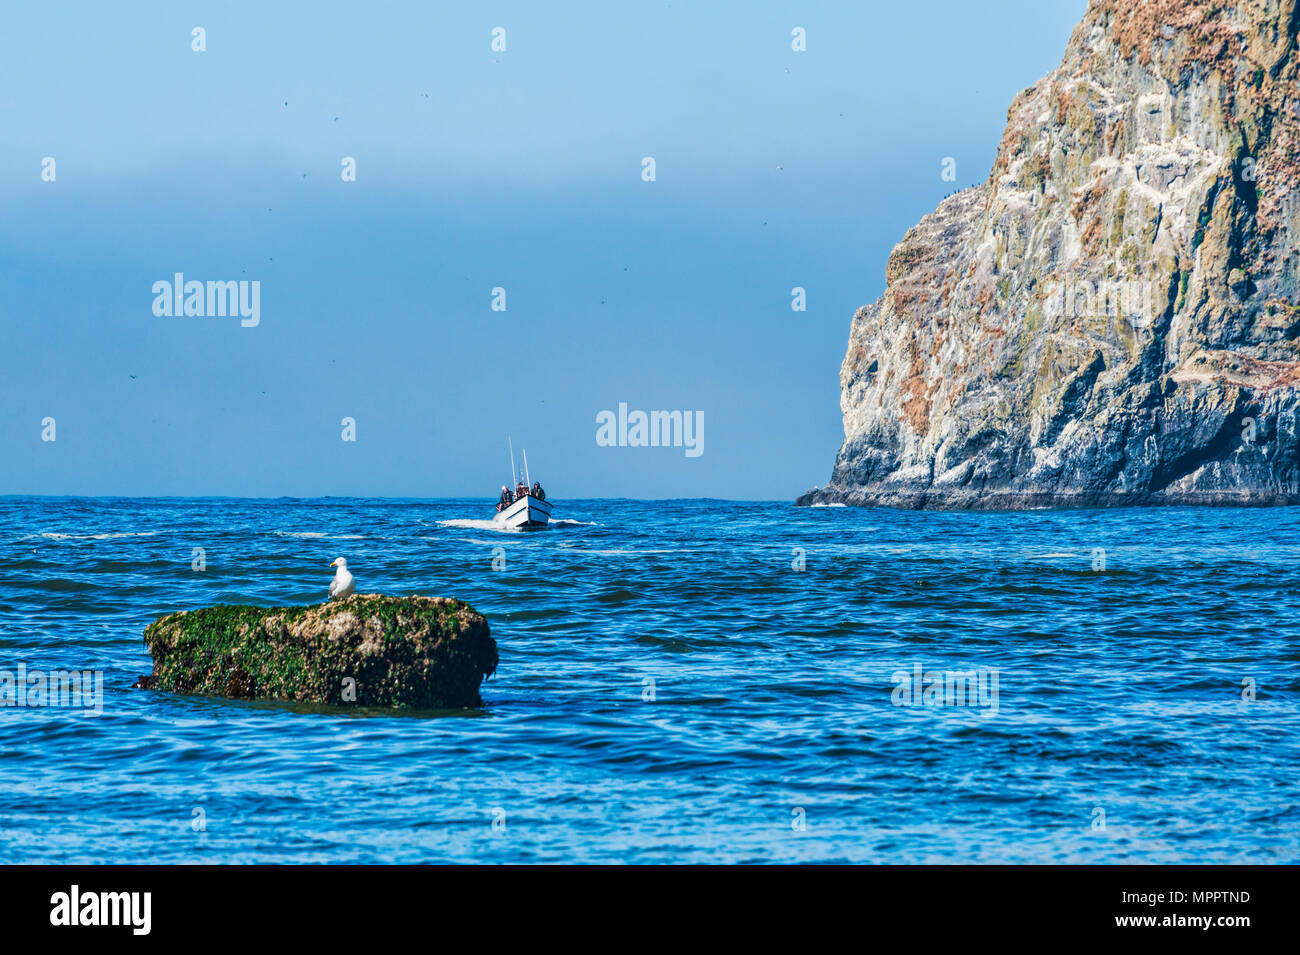 Pacific City, Oregon, USA - July 2, 2015: A dory boat passes by Haystack Rock as he makes his approach to land on the beach at Cape Kiwanda - Stock Image